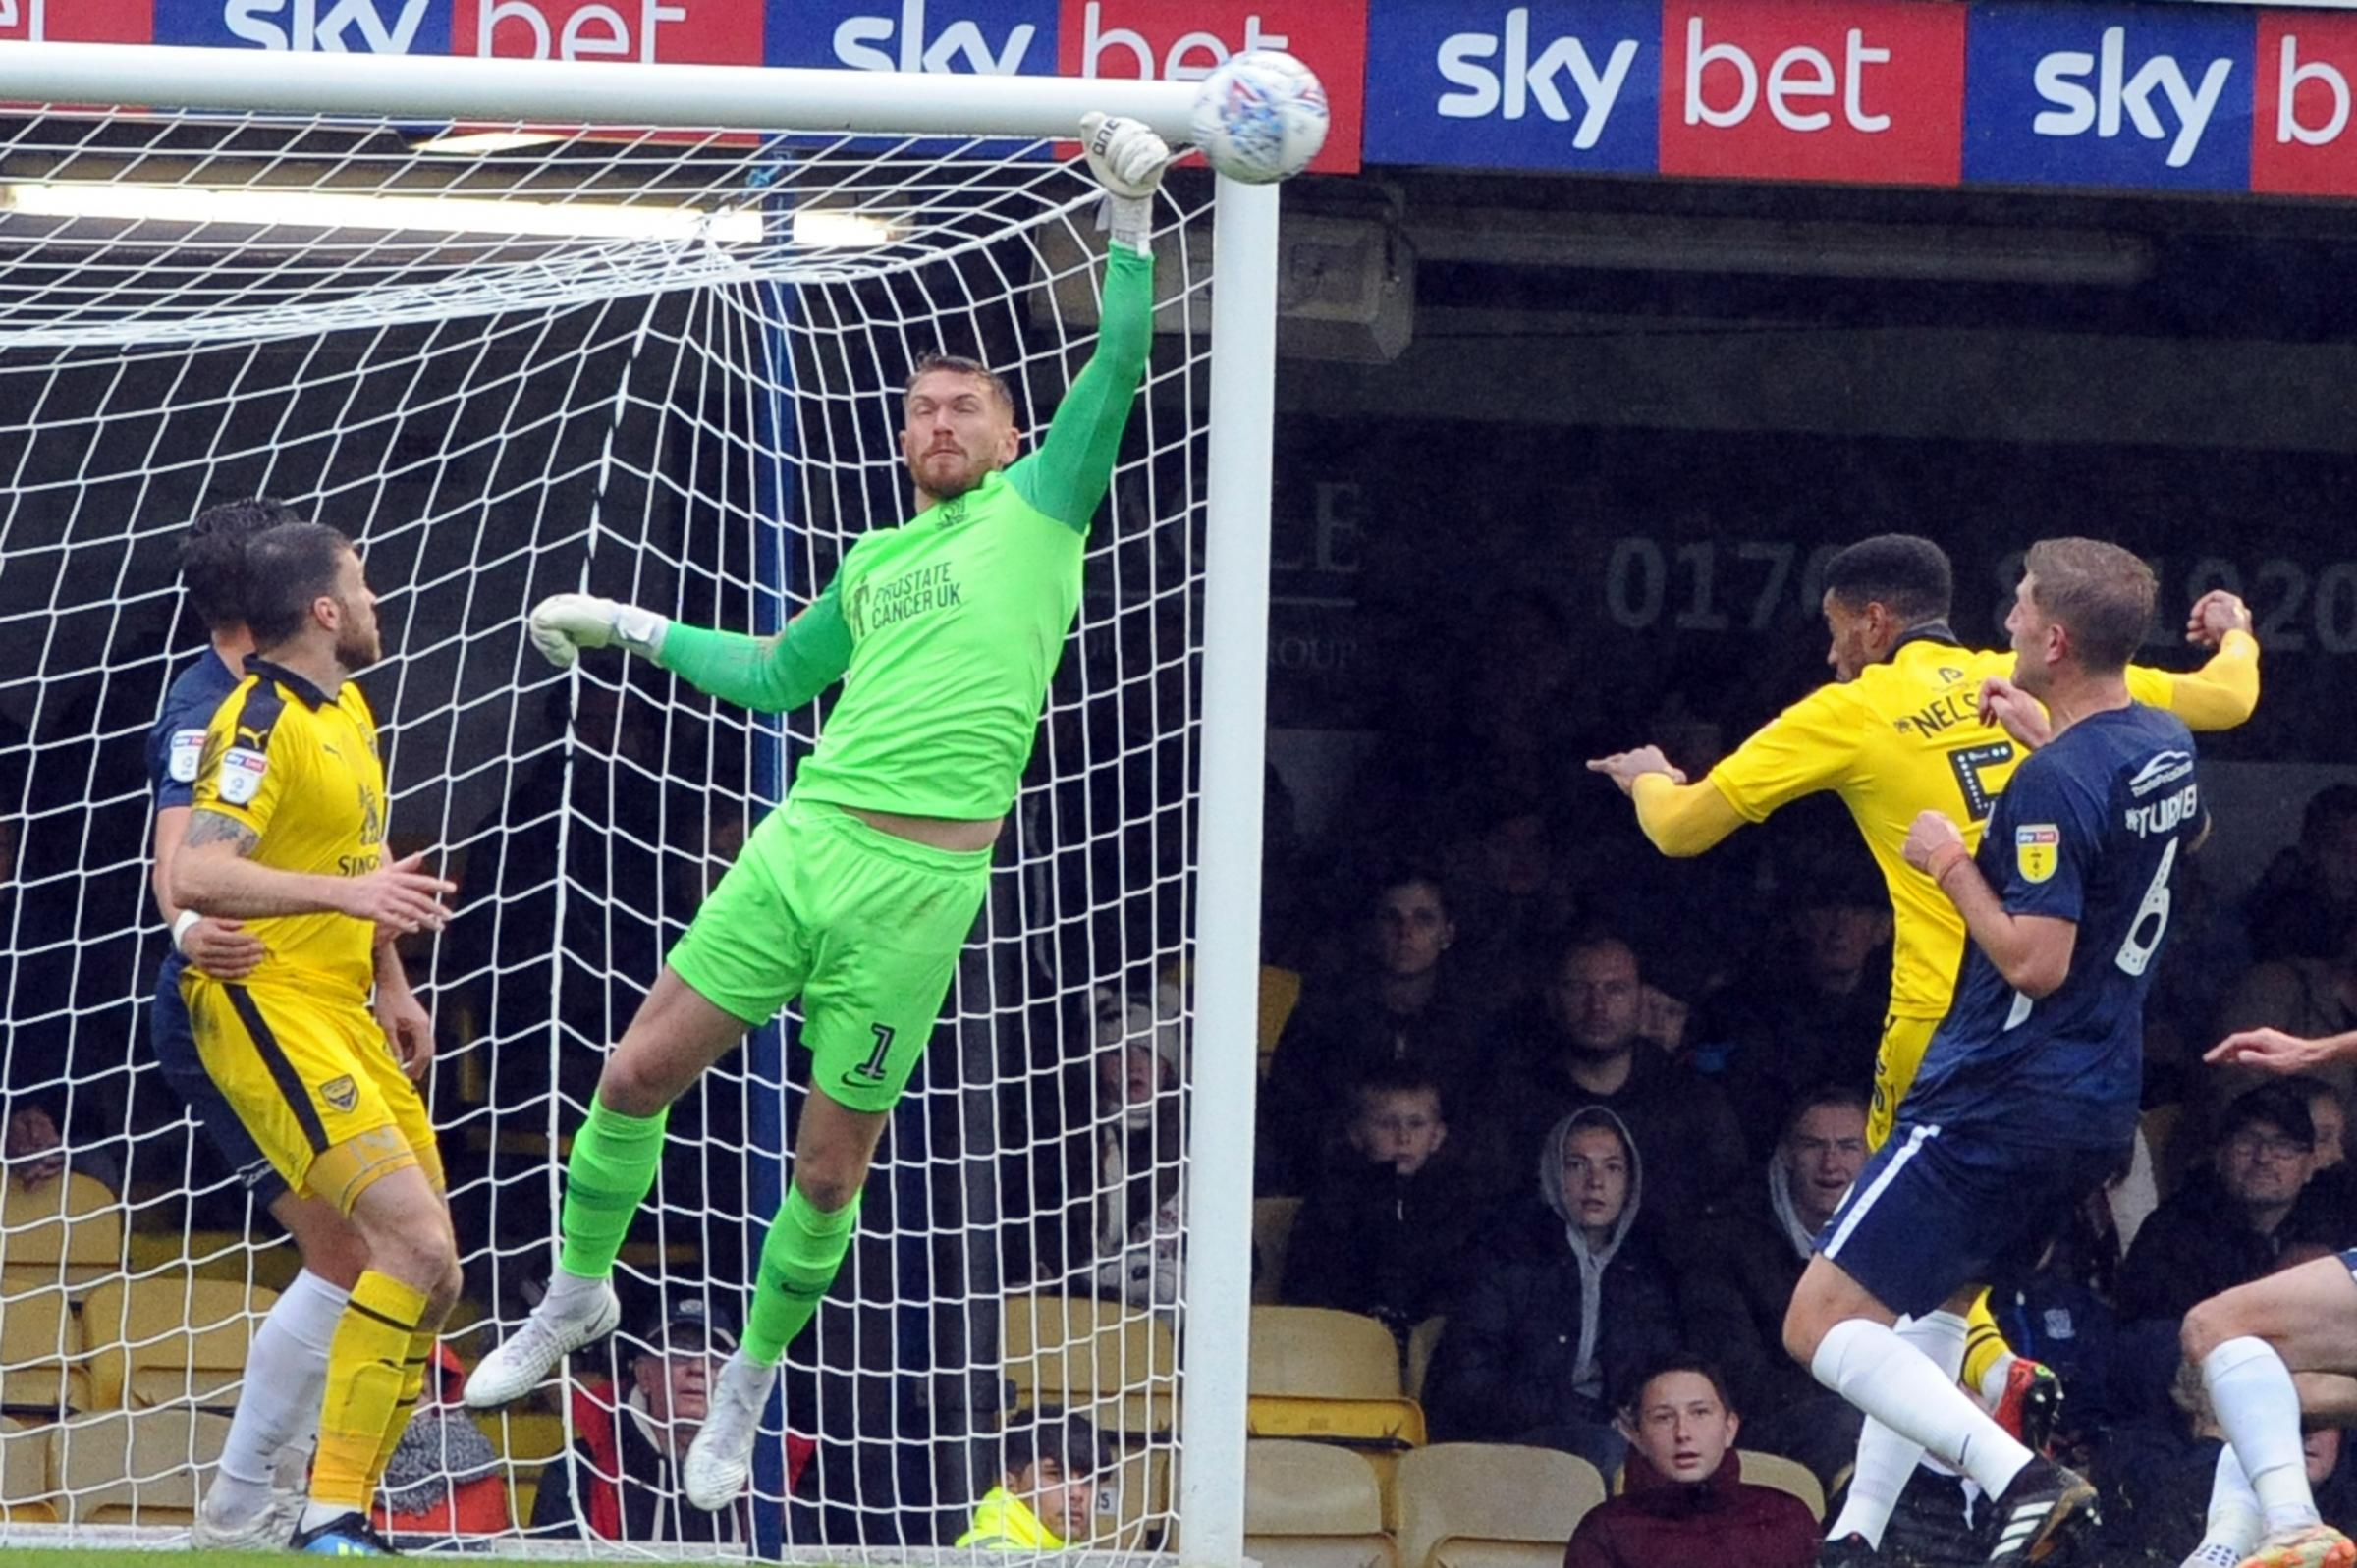 Punching the ball clear - Southend United goalkeeper Mark Oxley